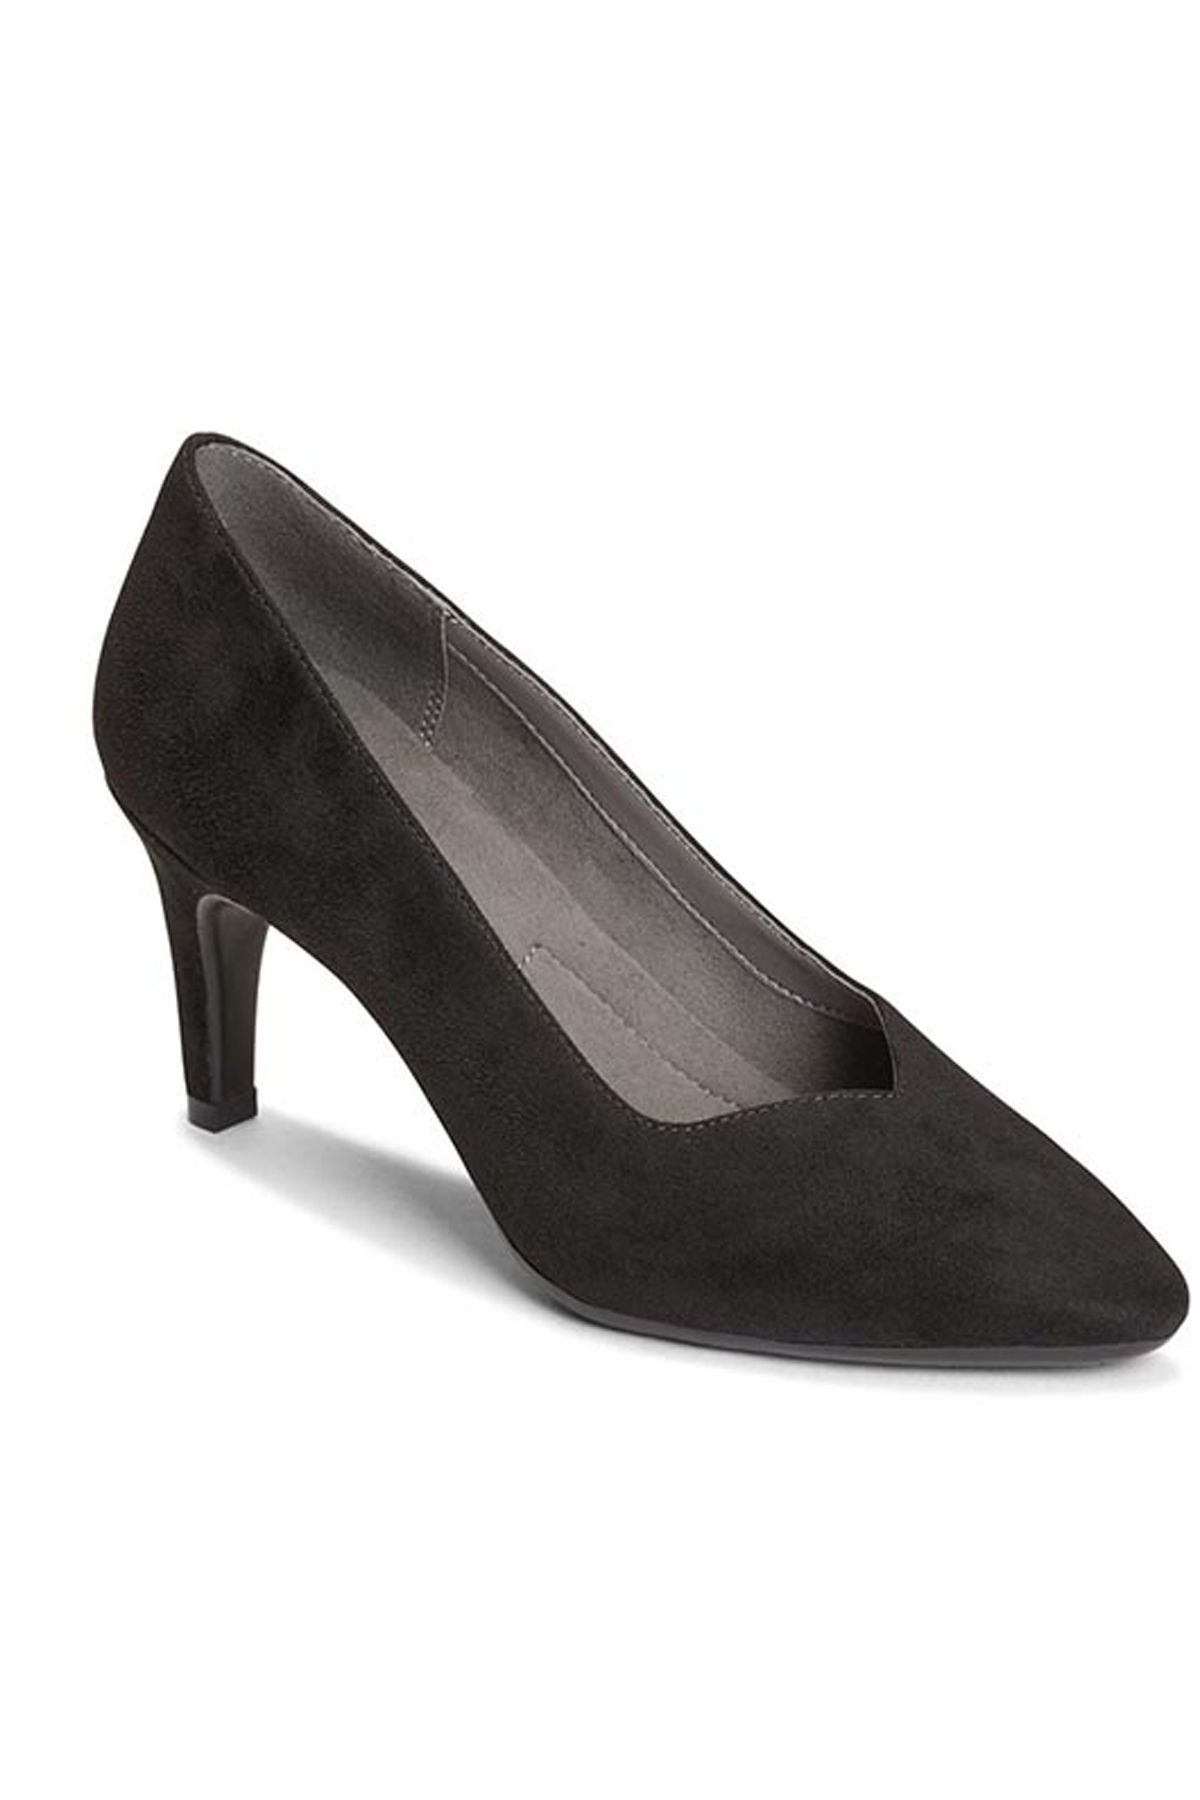 comfy black designers and carrie comforter weitzman heels shoes stuart most for trends high fashion pumps best comfortable hbz